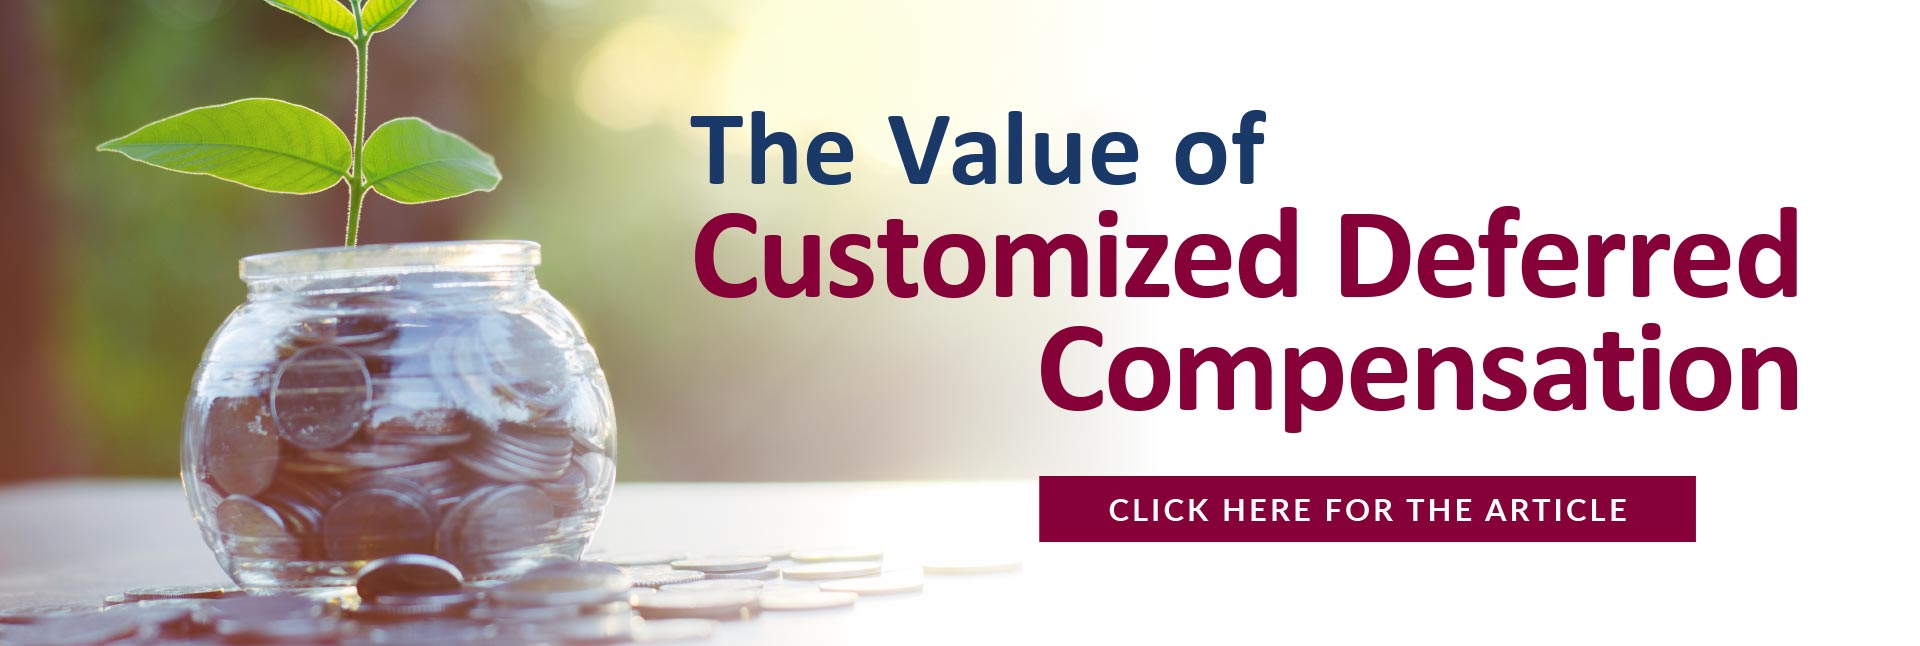 Bank Director - The Value of Customized Deferred Compensation